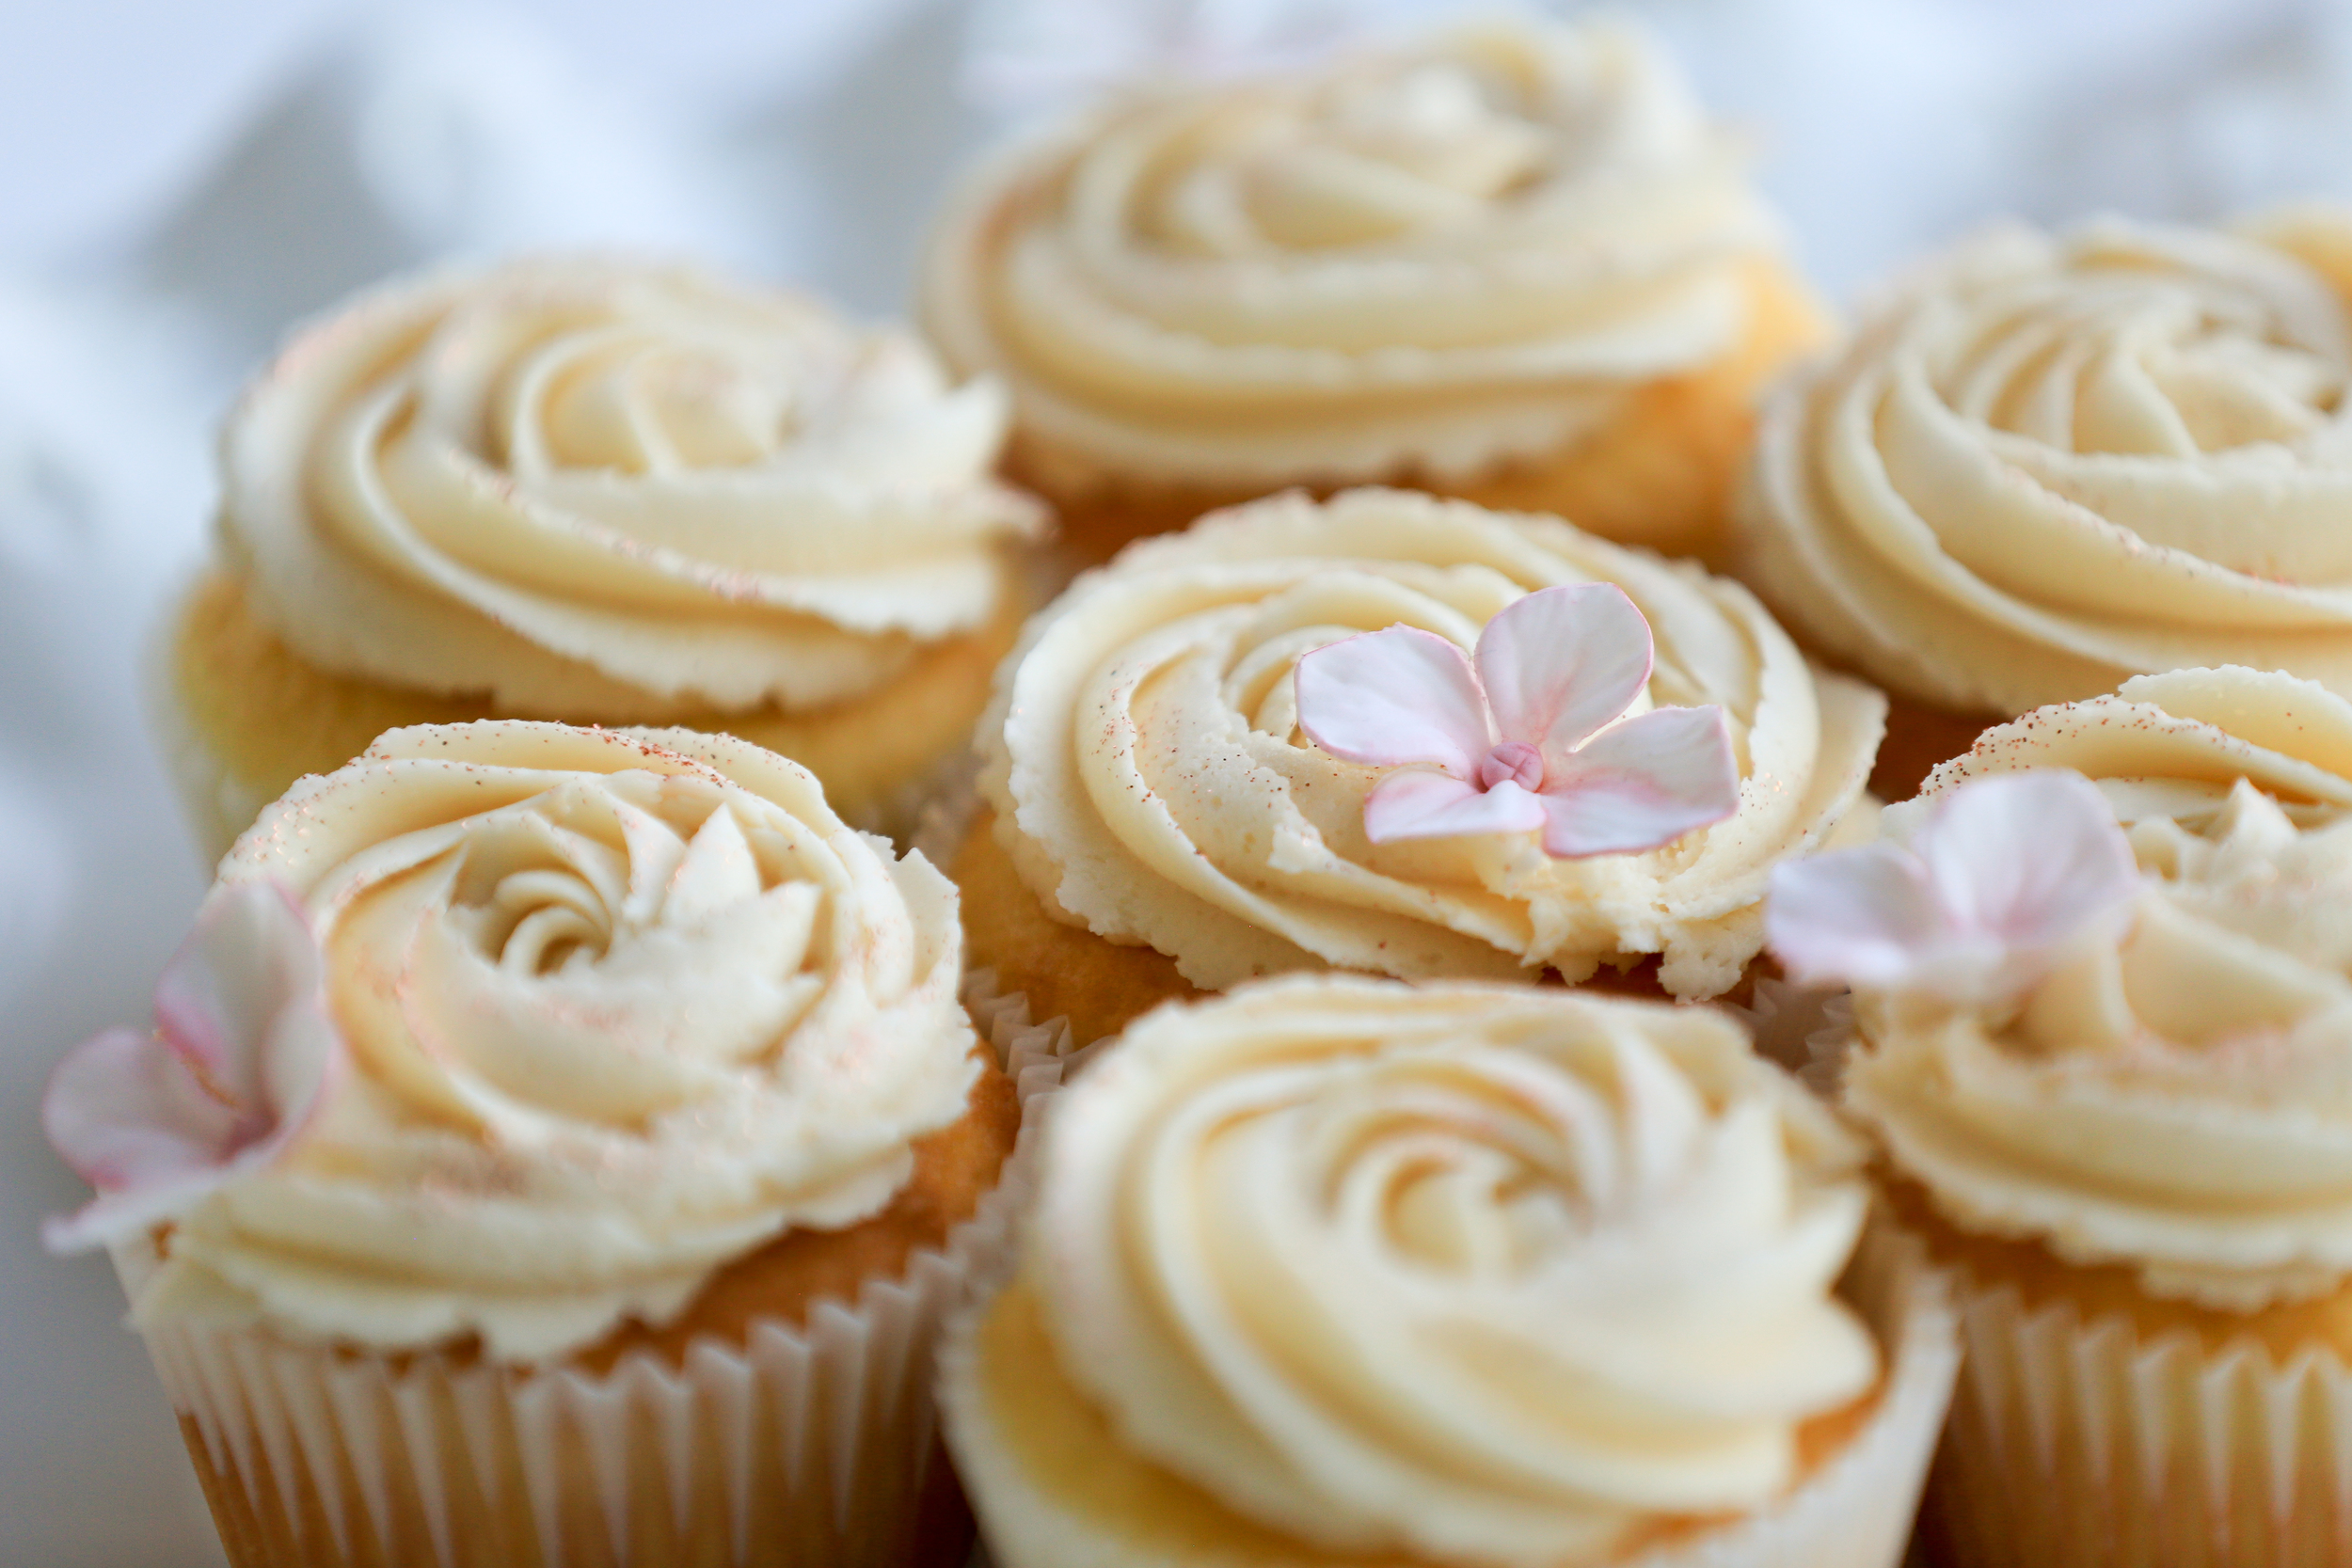 Large Vanilla Cupcakes with Sugar Flowers